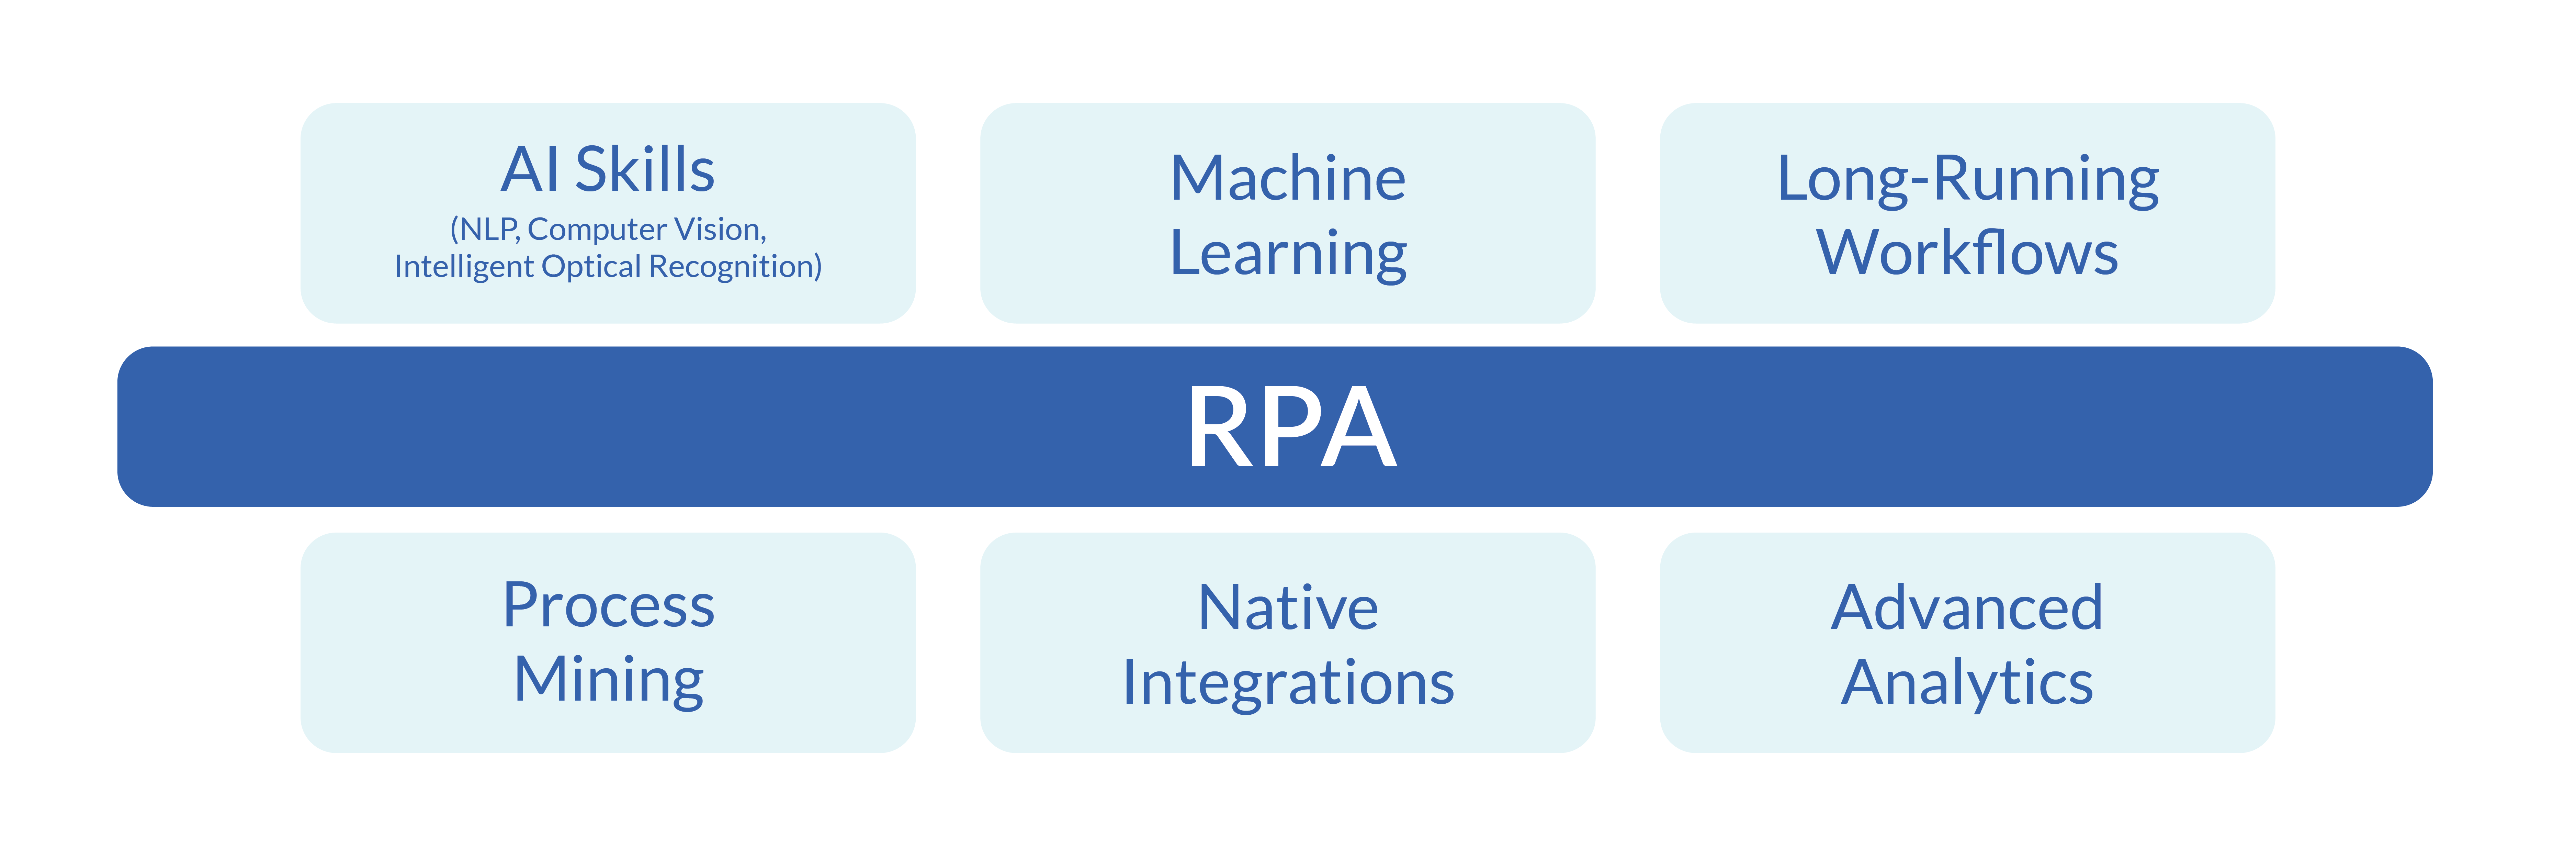 Hyperautomation is the enhancement of RPA through AI, machine learning, long-running workflows, process mining, native integrations, and advanced analytics.